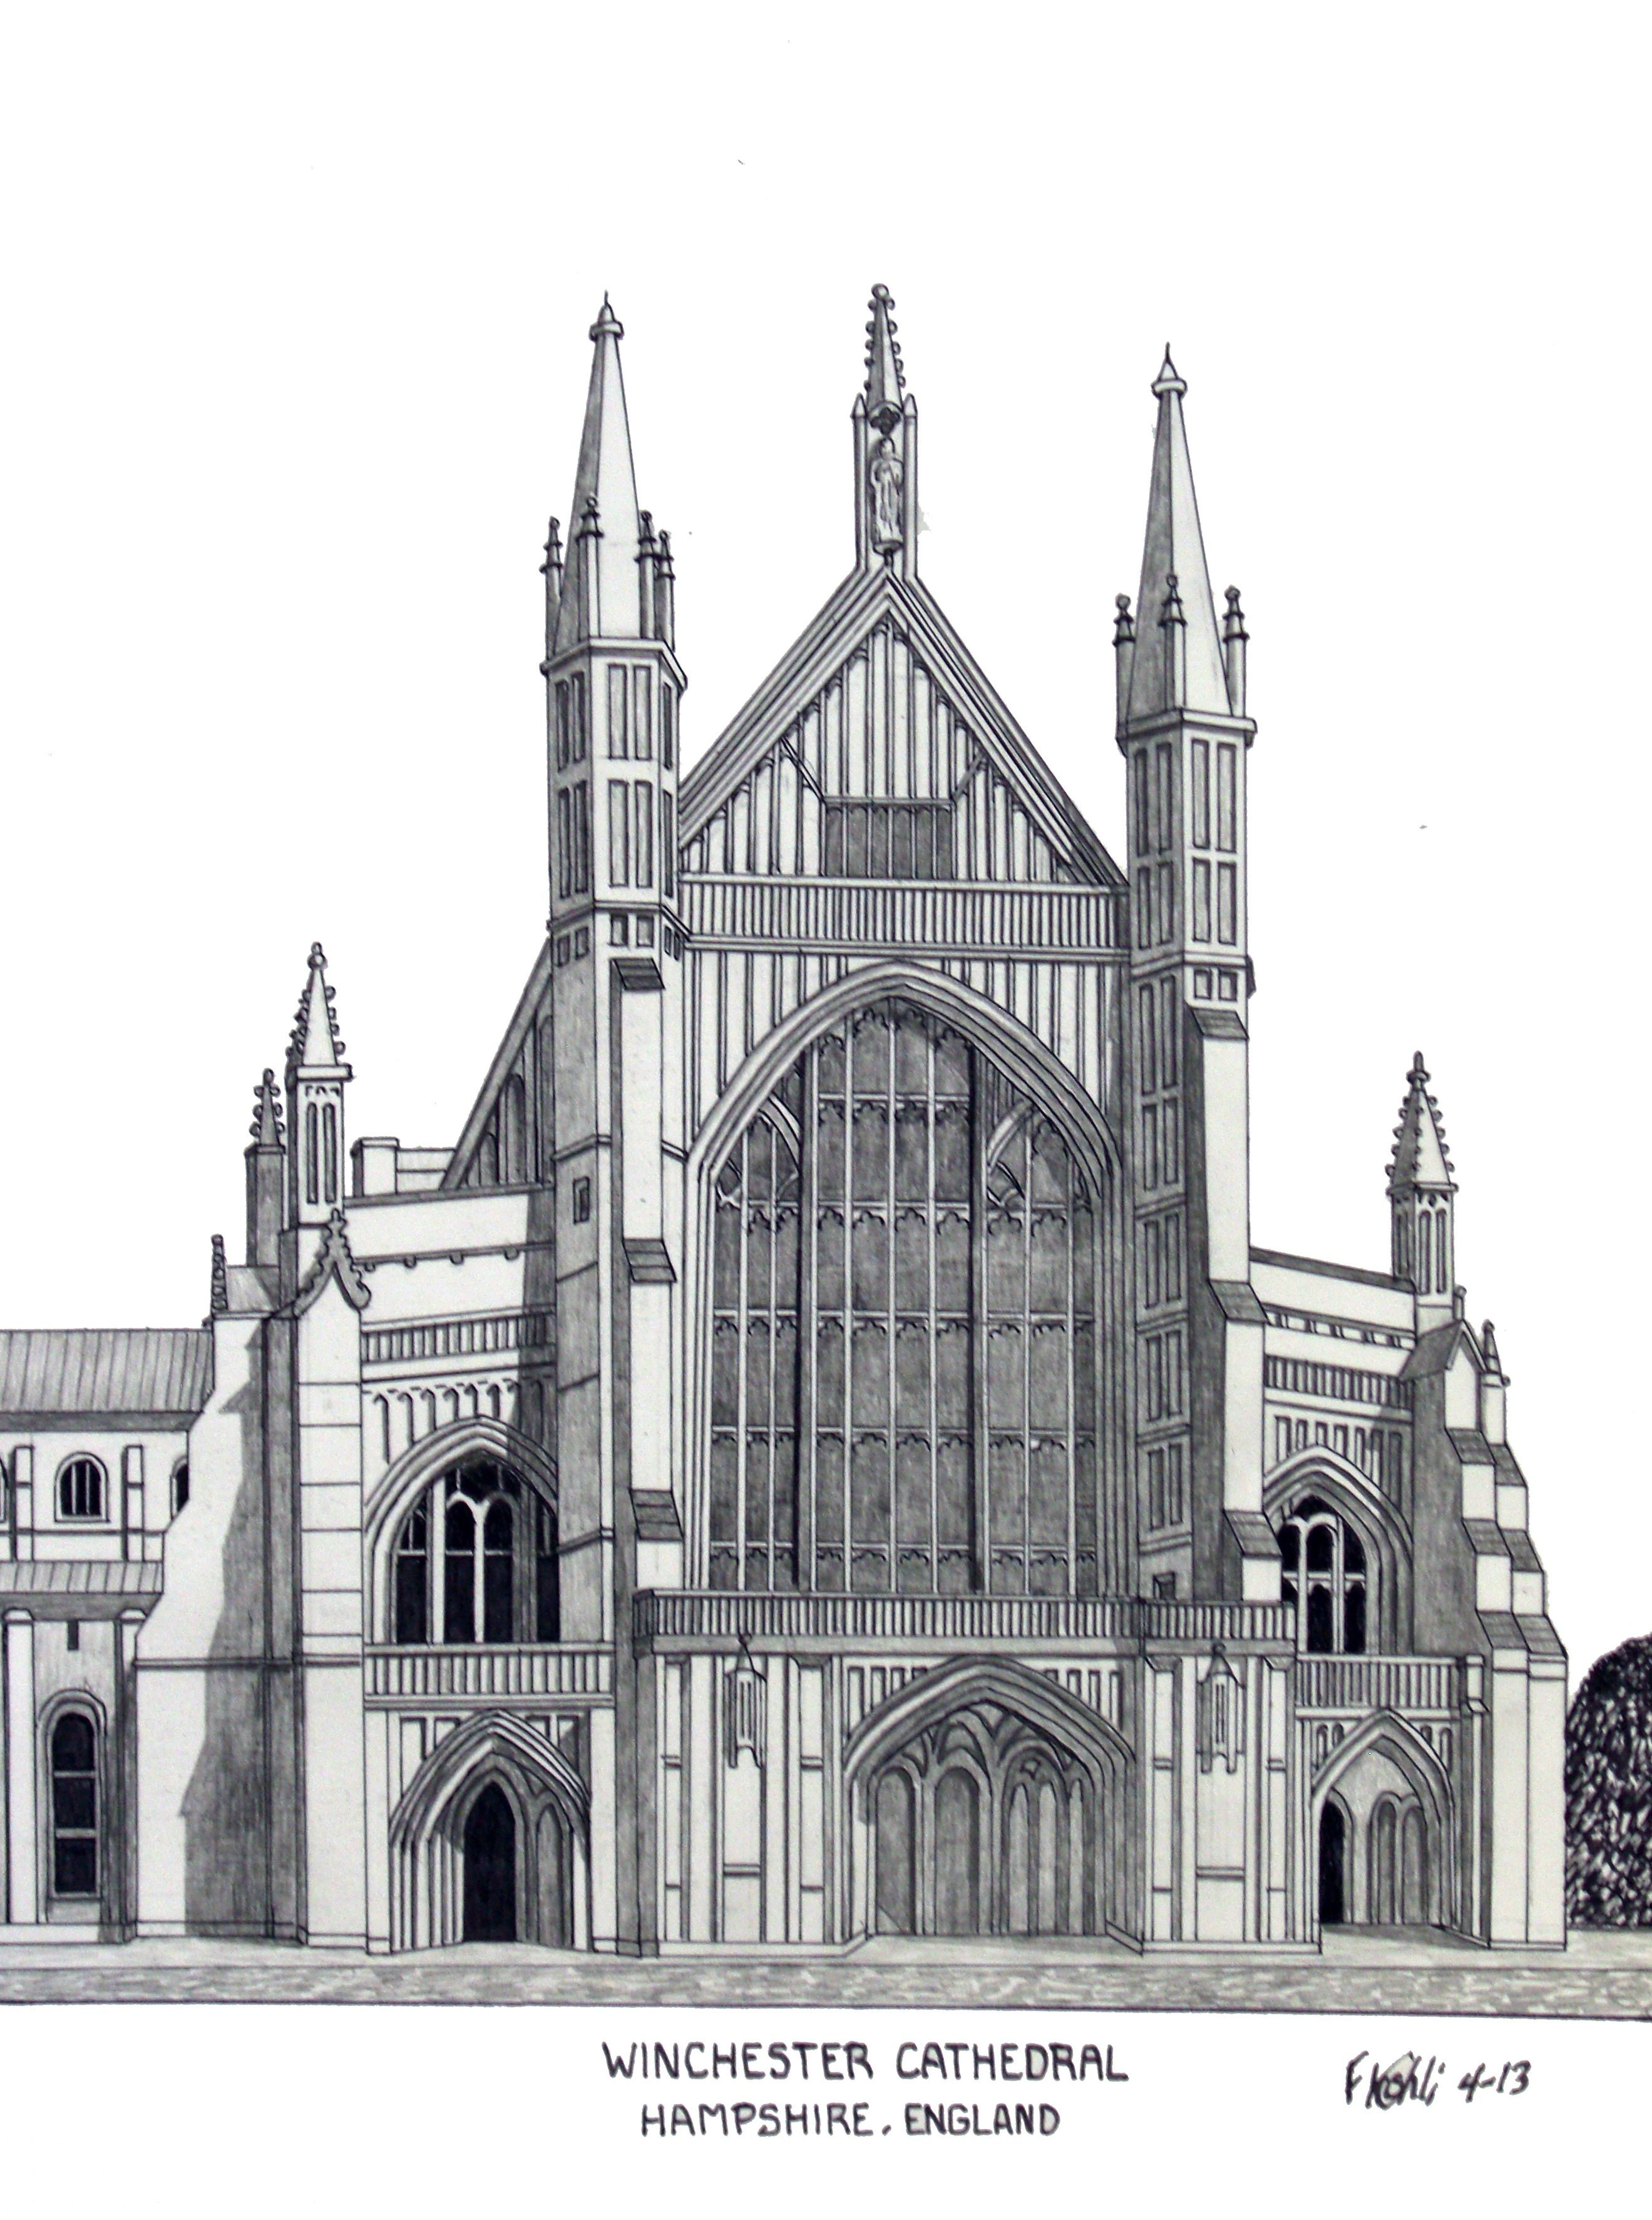 Winchester cathedral pen and pencil drawing by frederic kohli of the historic cathedral in the